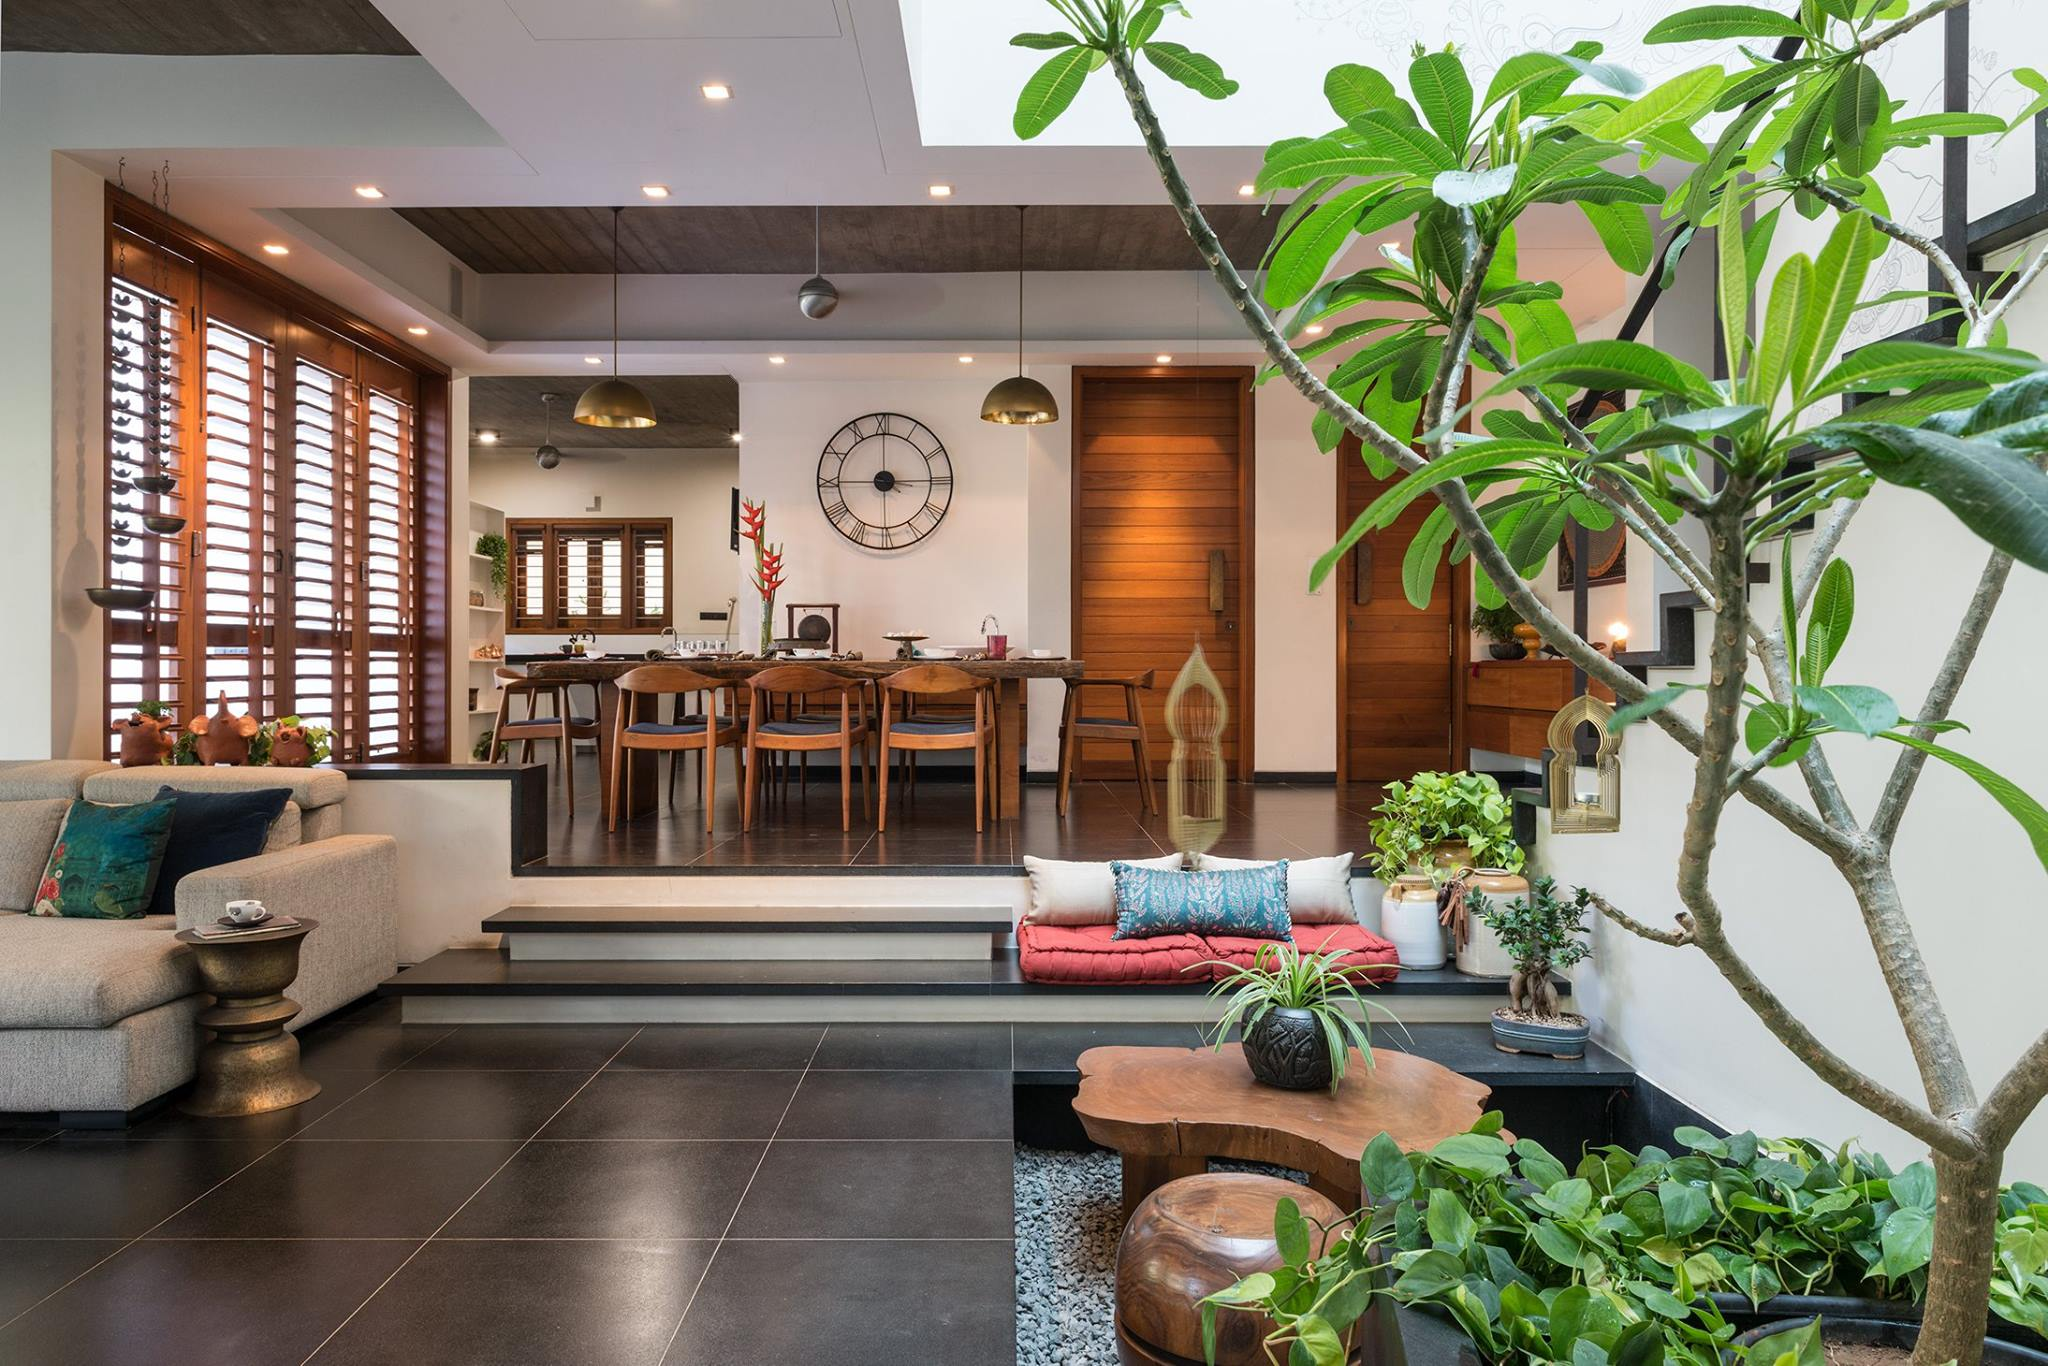 Top 10 Courtyard House In India - The Architects Diary